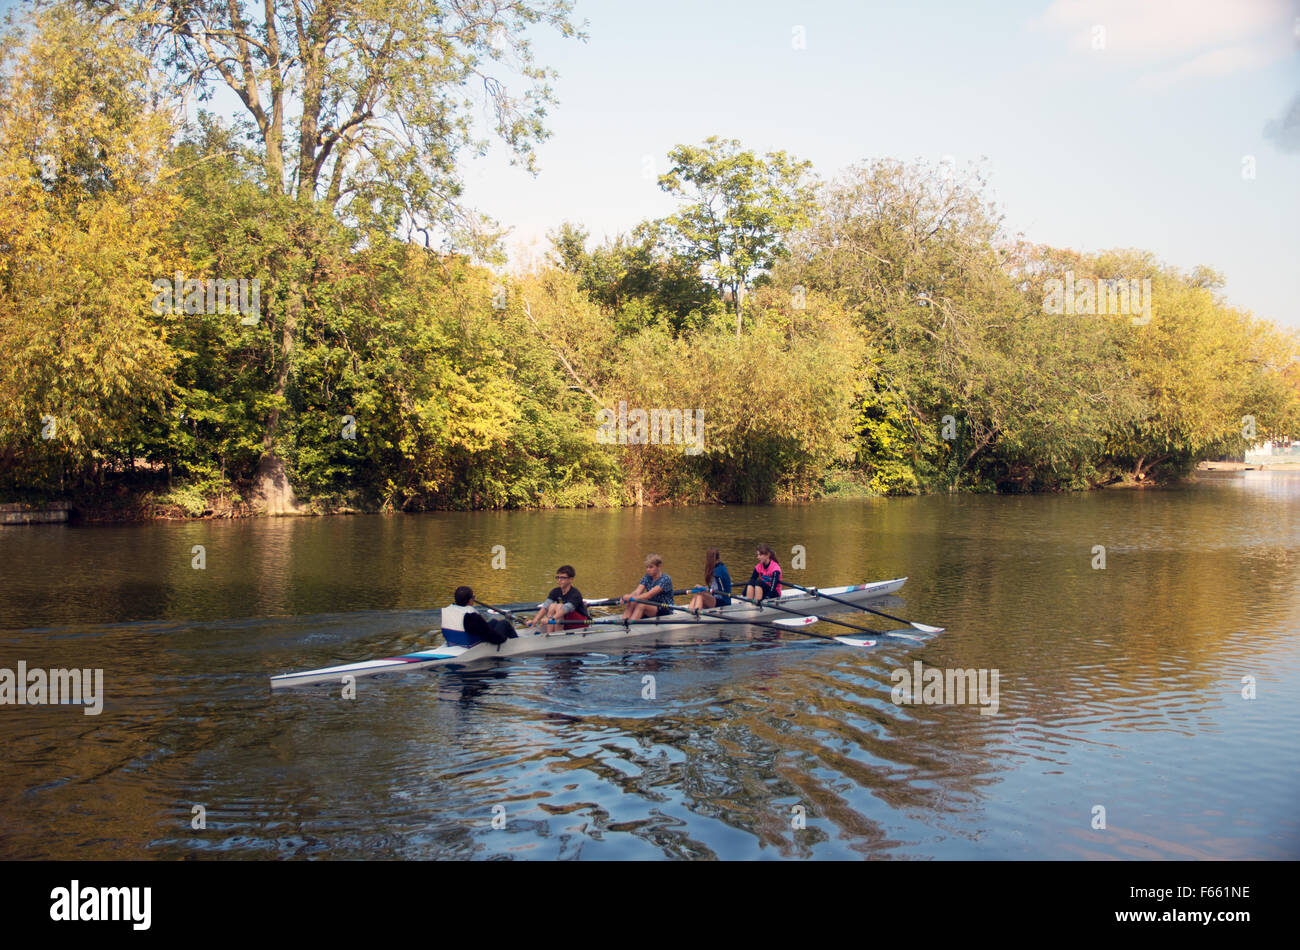 Great Ouse Rowing Stock Photos & Great Ouse Rowing Stock ...